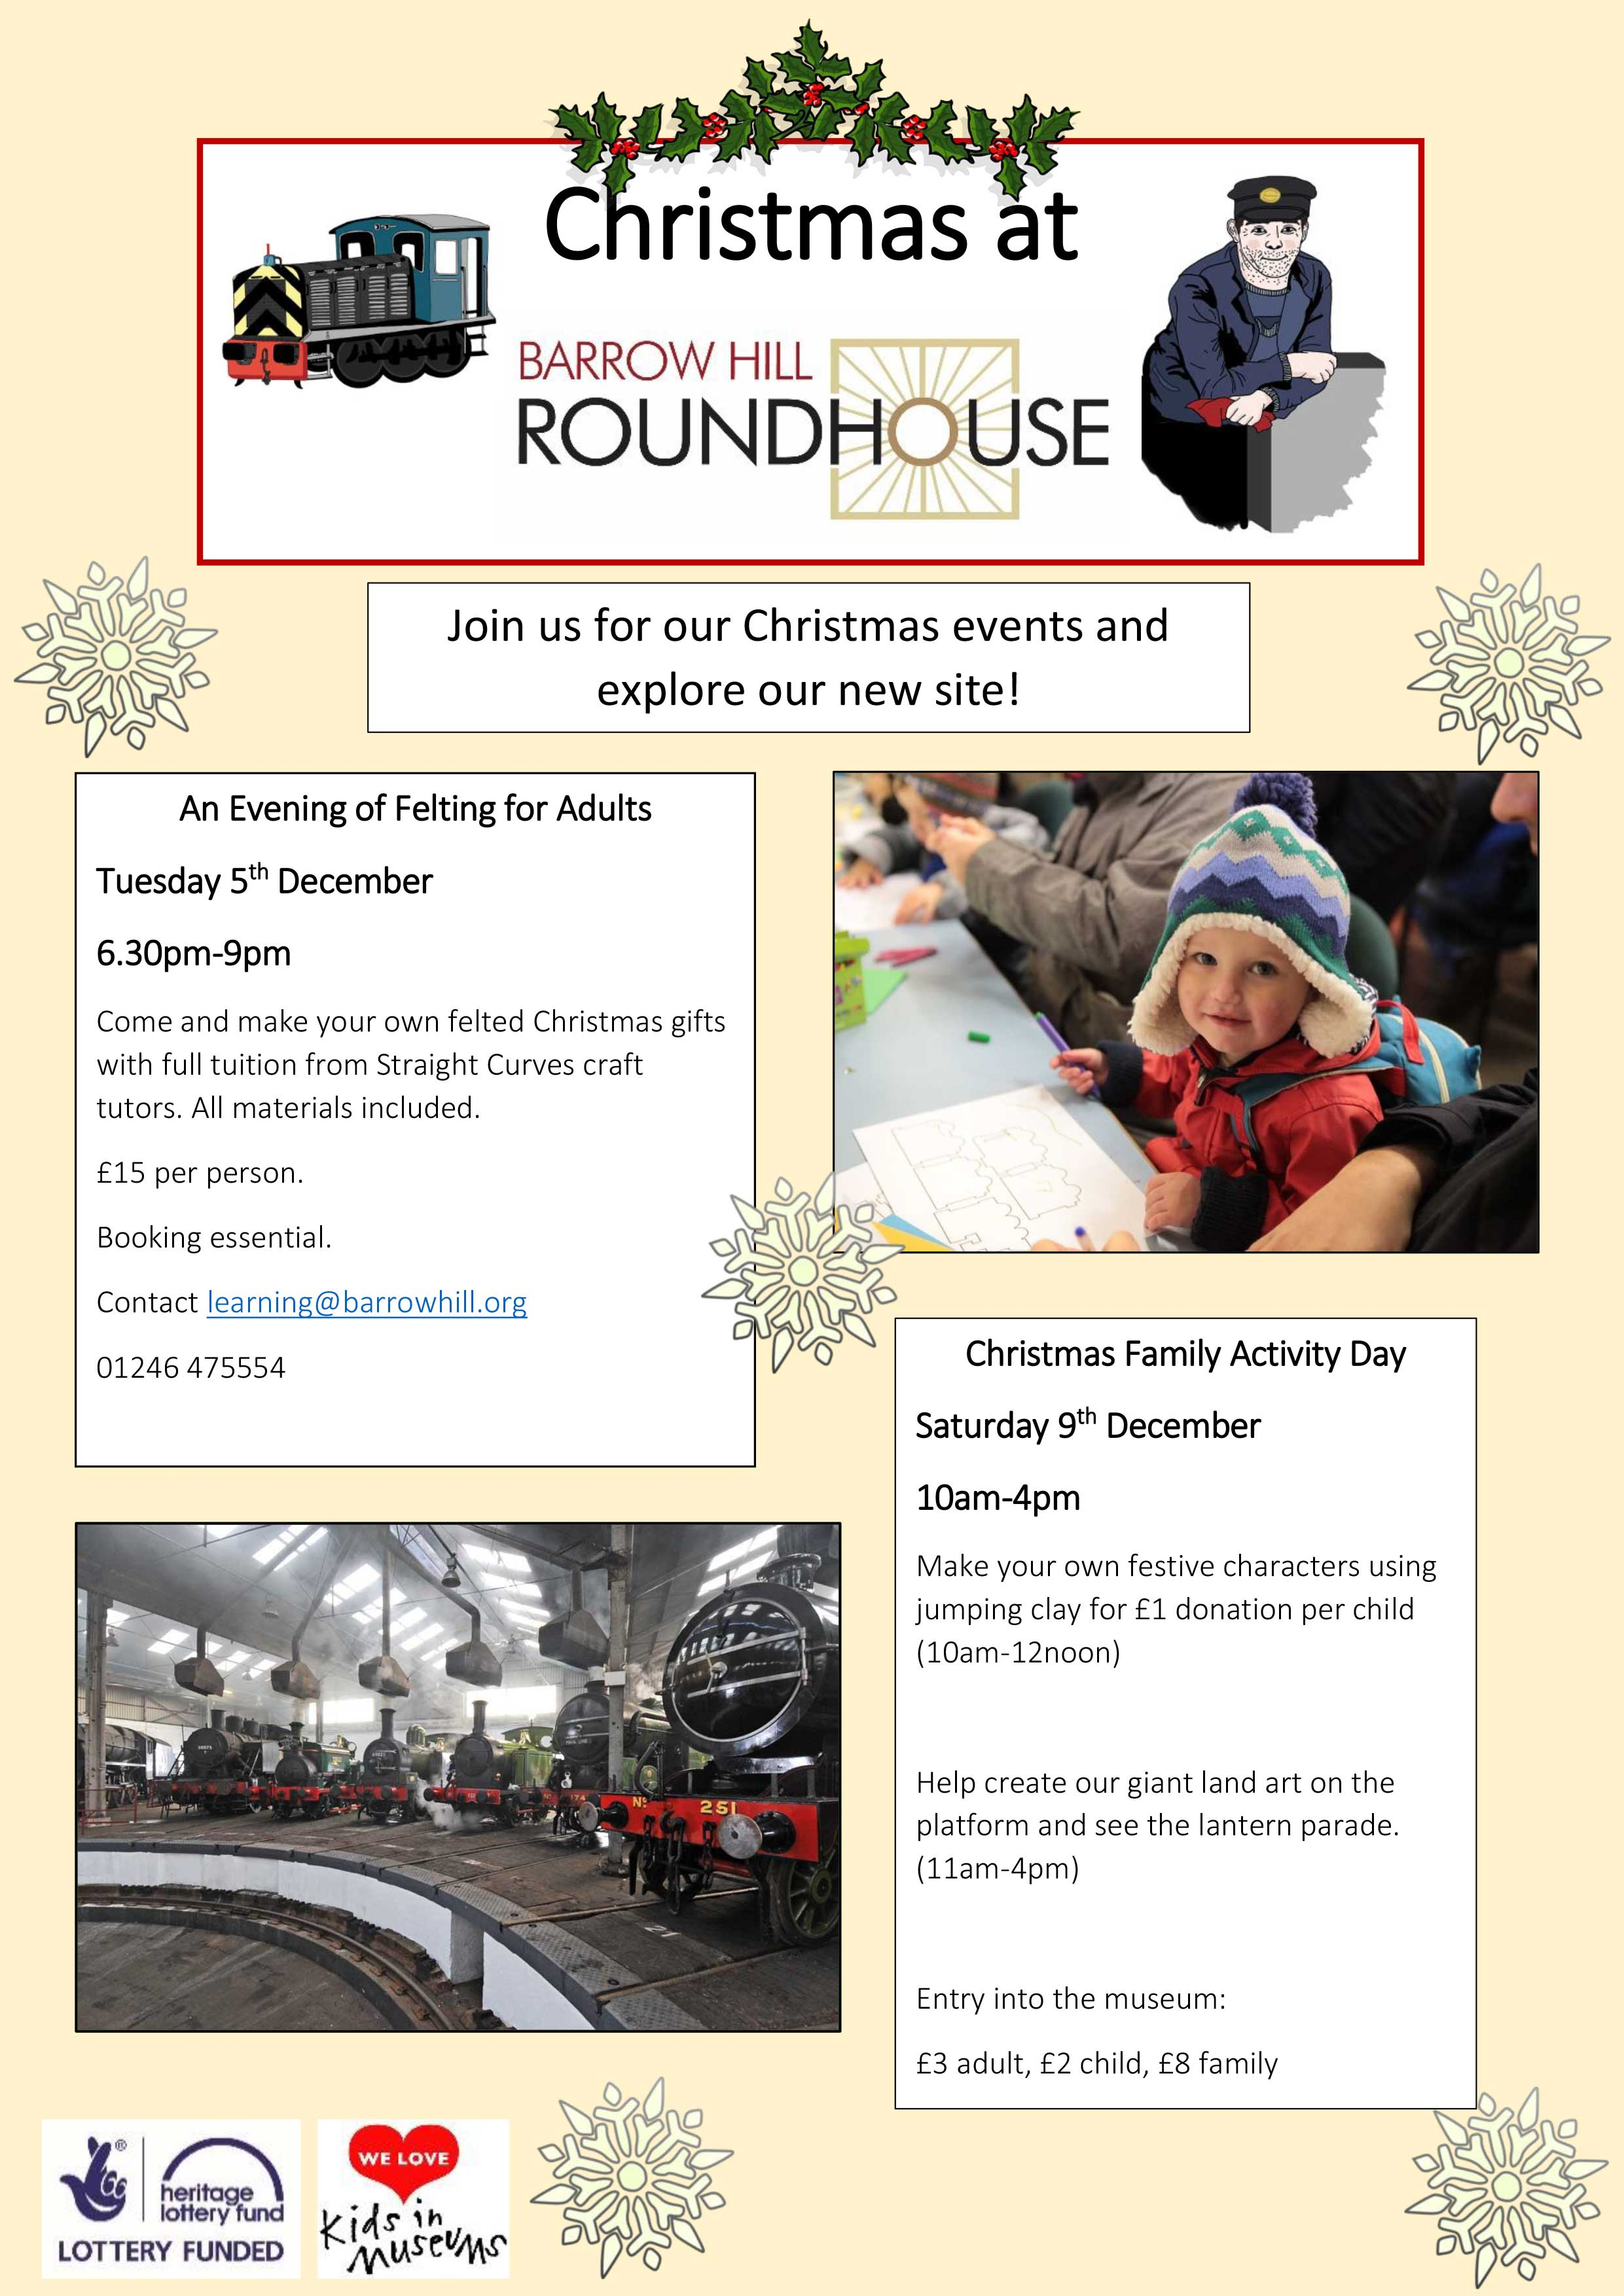 Family Events at Barrow Hill Roundhouse, Derbyshire